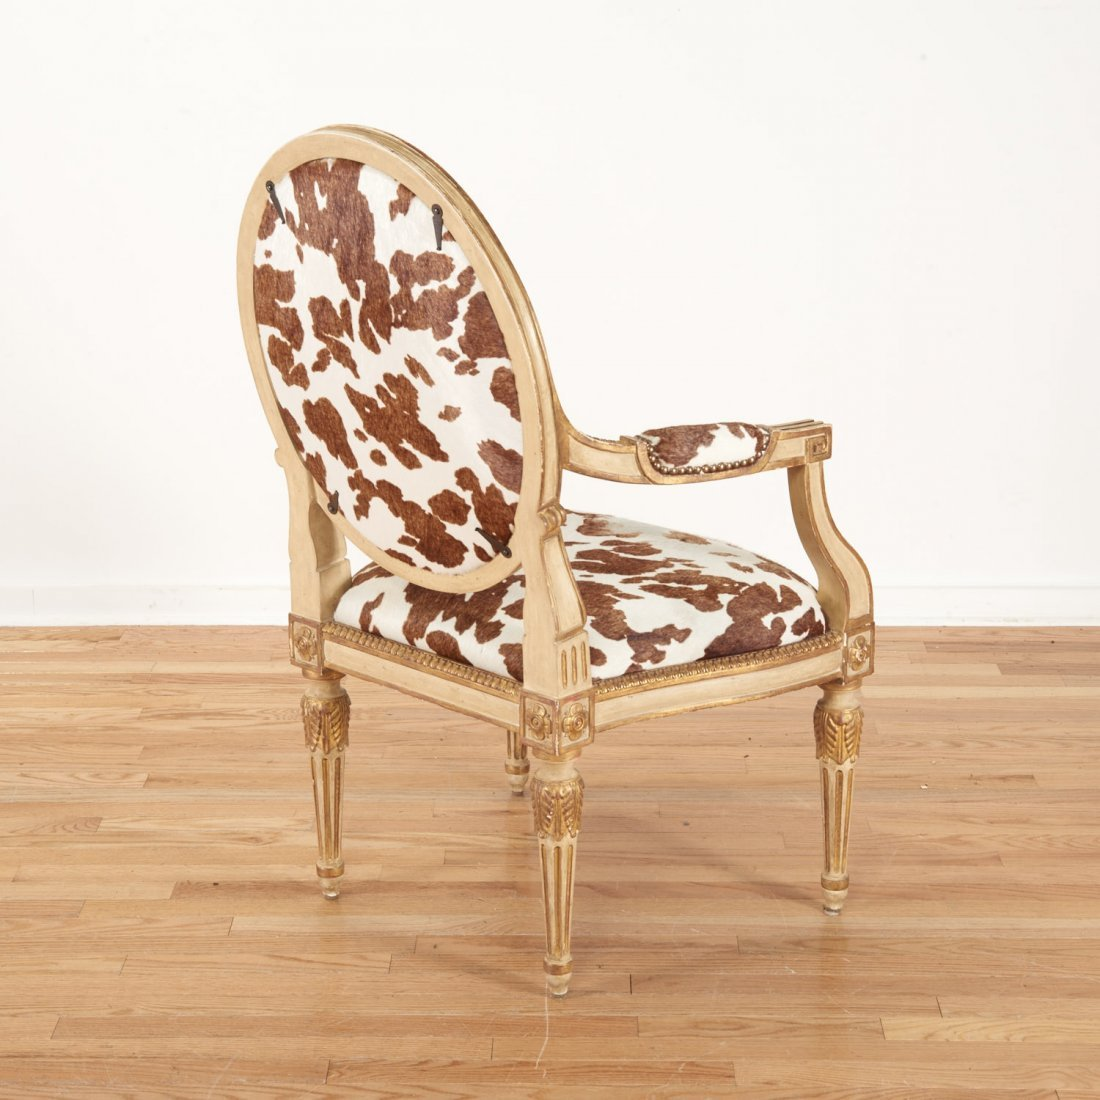 Louis XVI style cowhide fauteuil by Dennis & Leen - 5